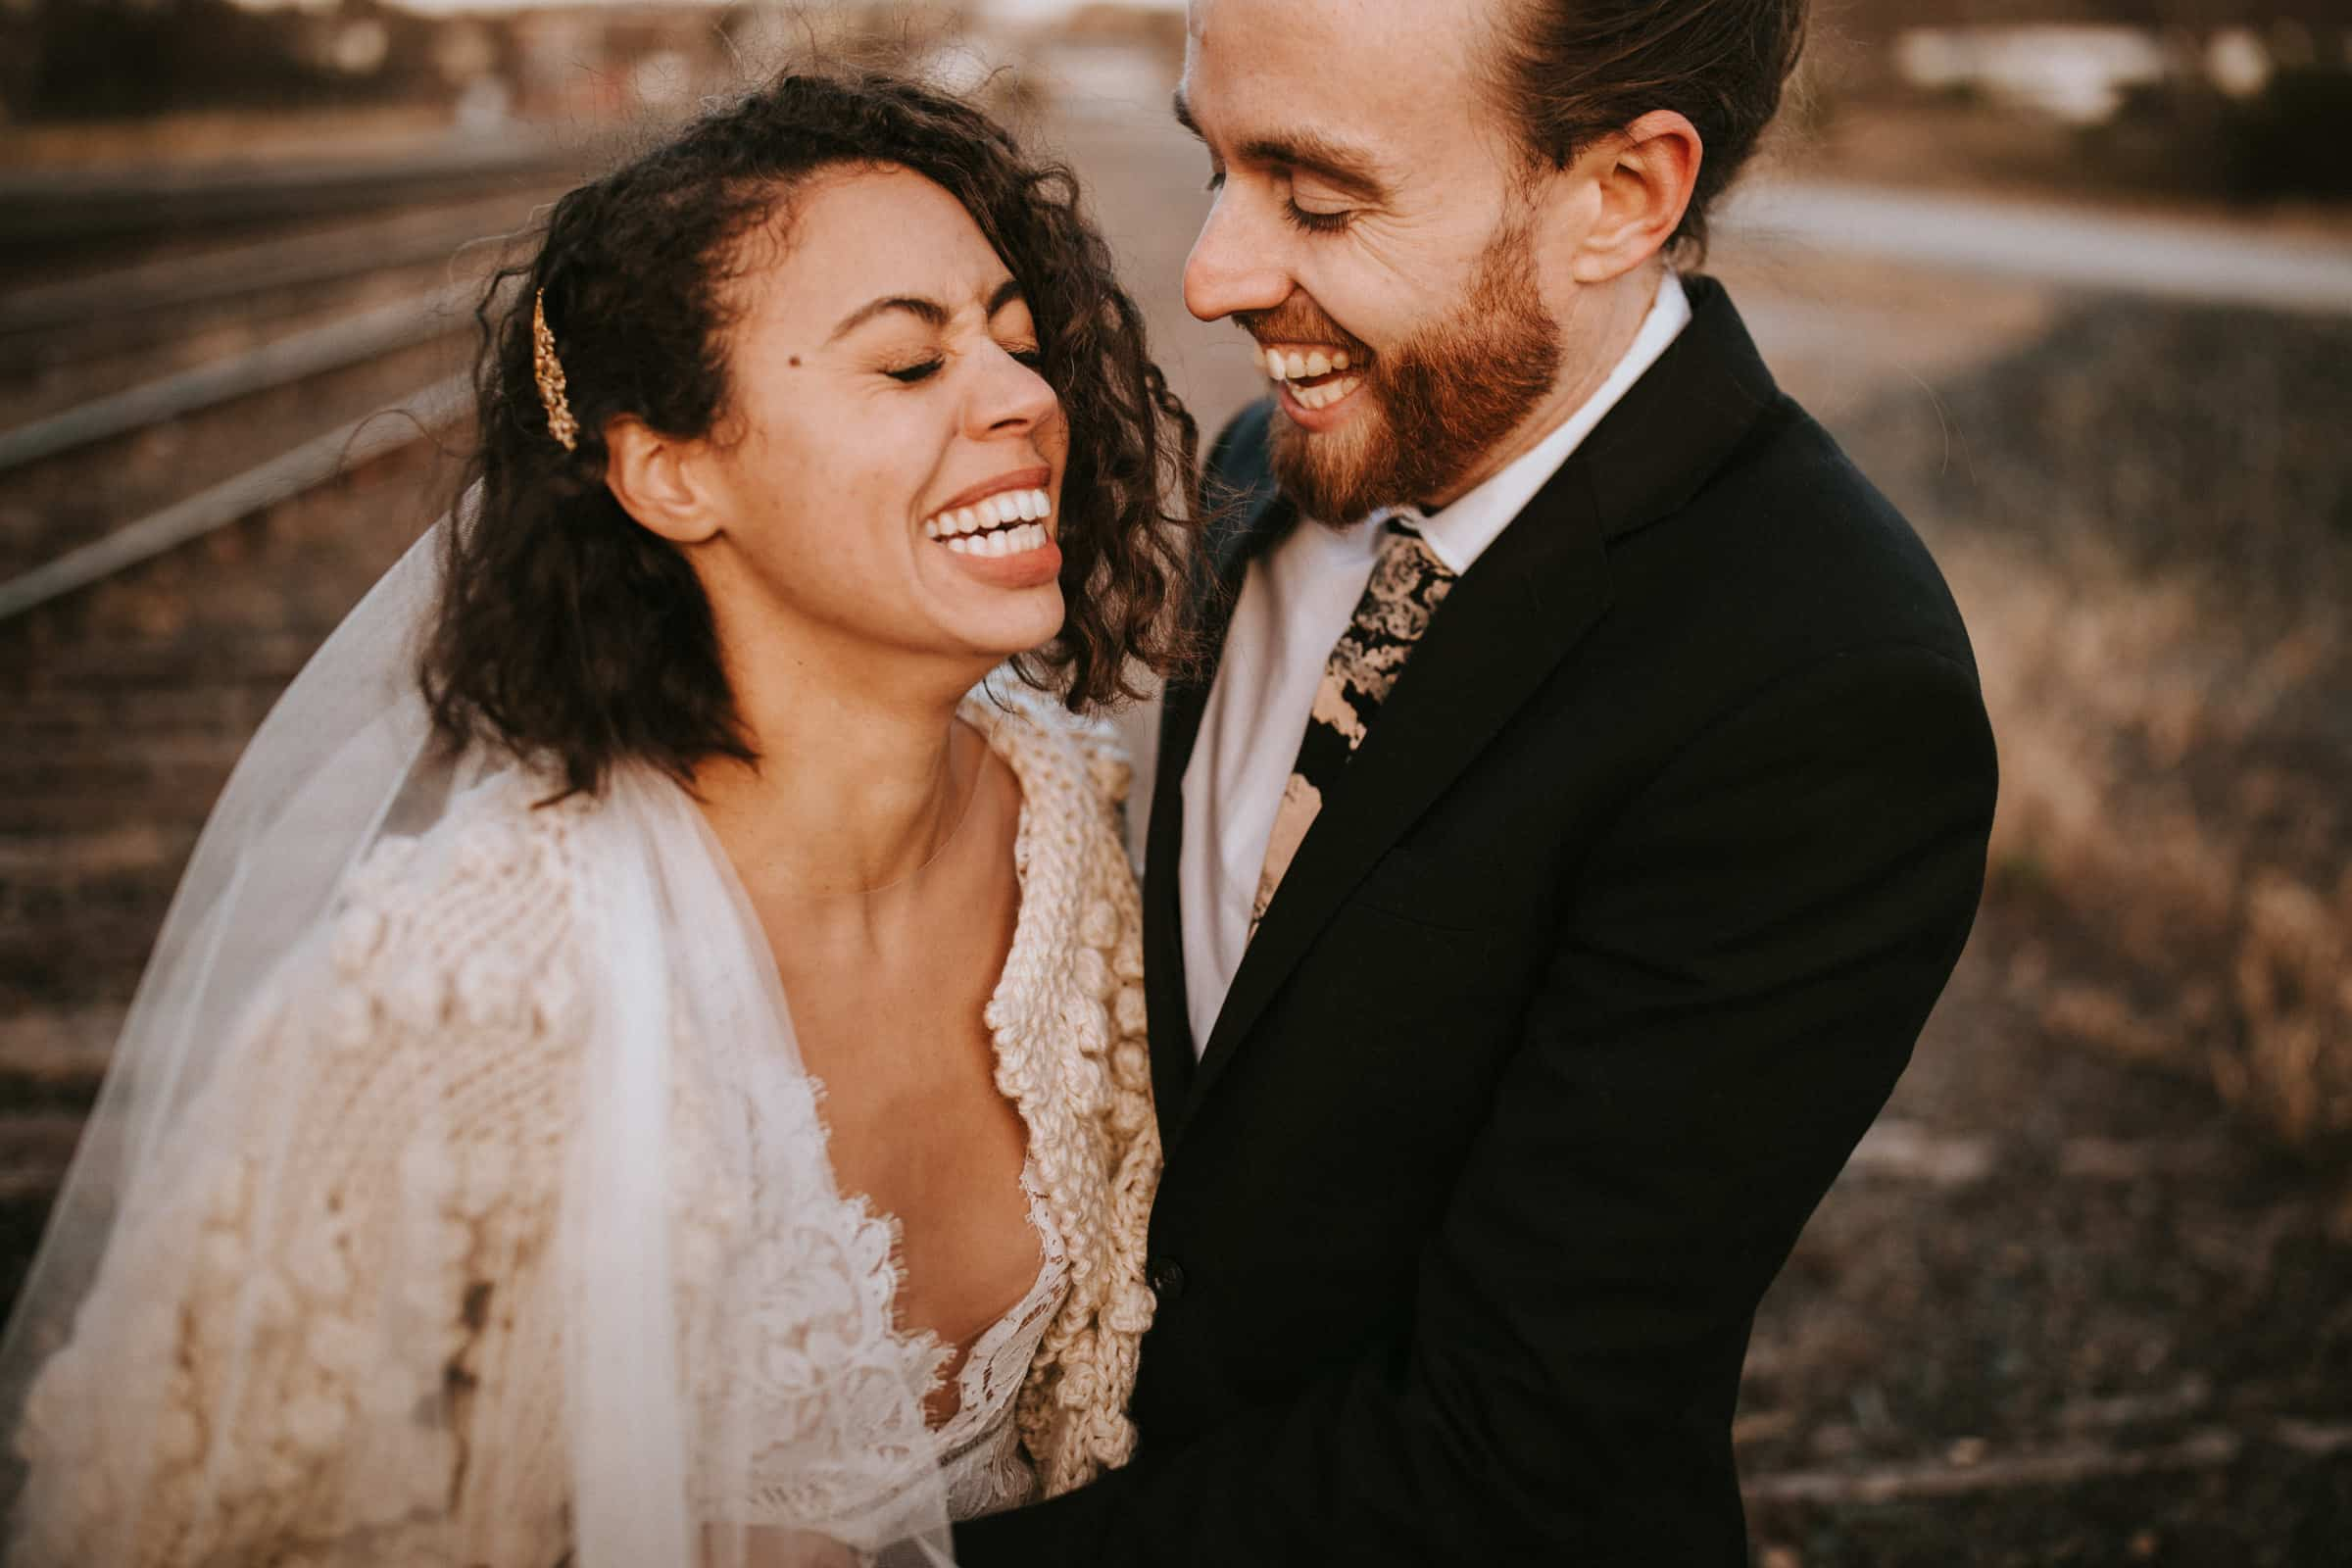 The closeup shows a wedding couple holding each other and laughing at each other.